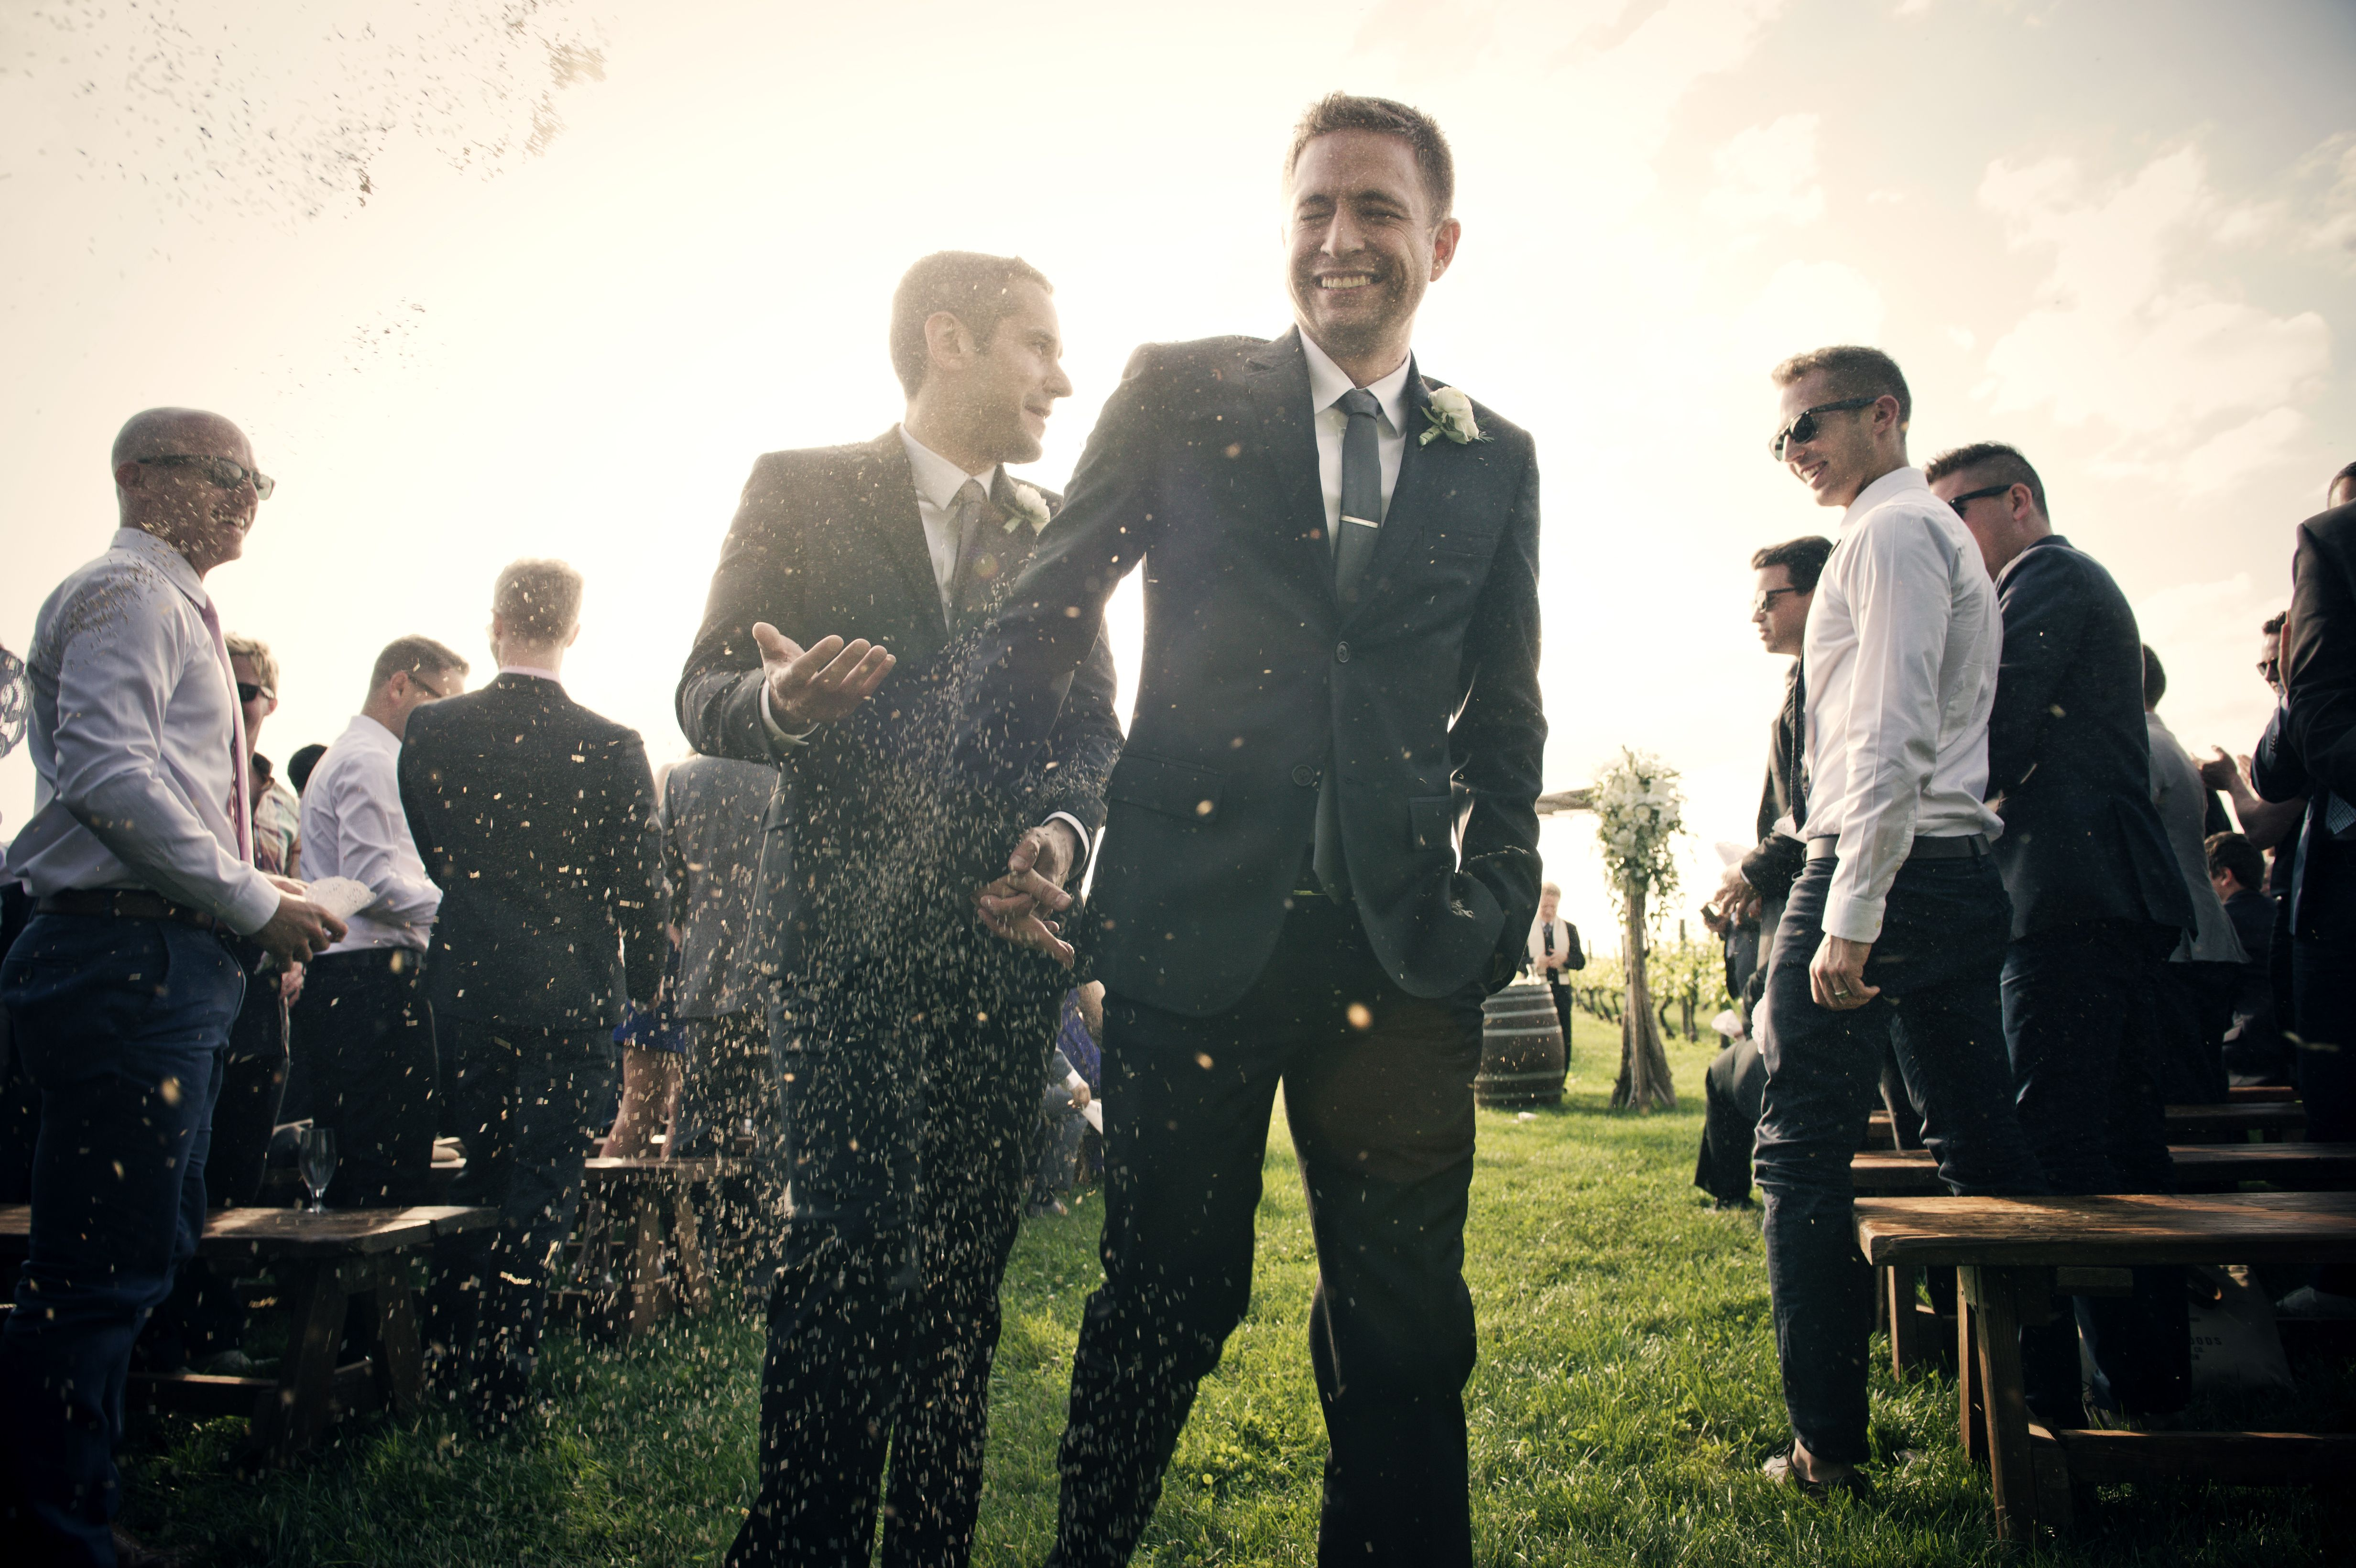 Congratulations to our grooms!  Photo by Mark Kopko.